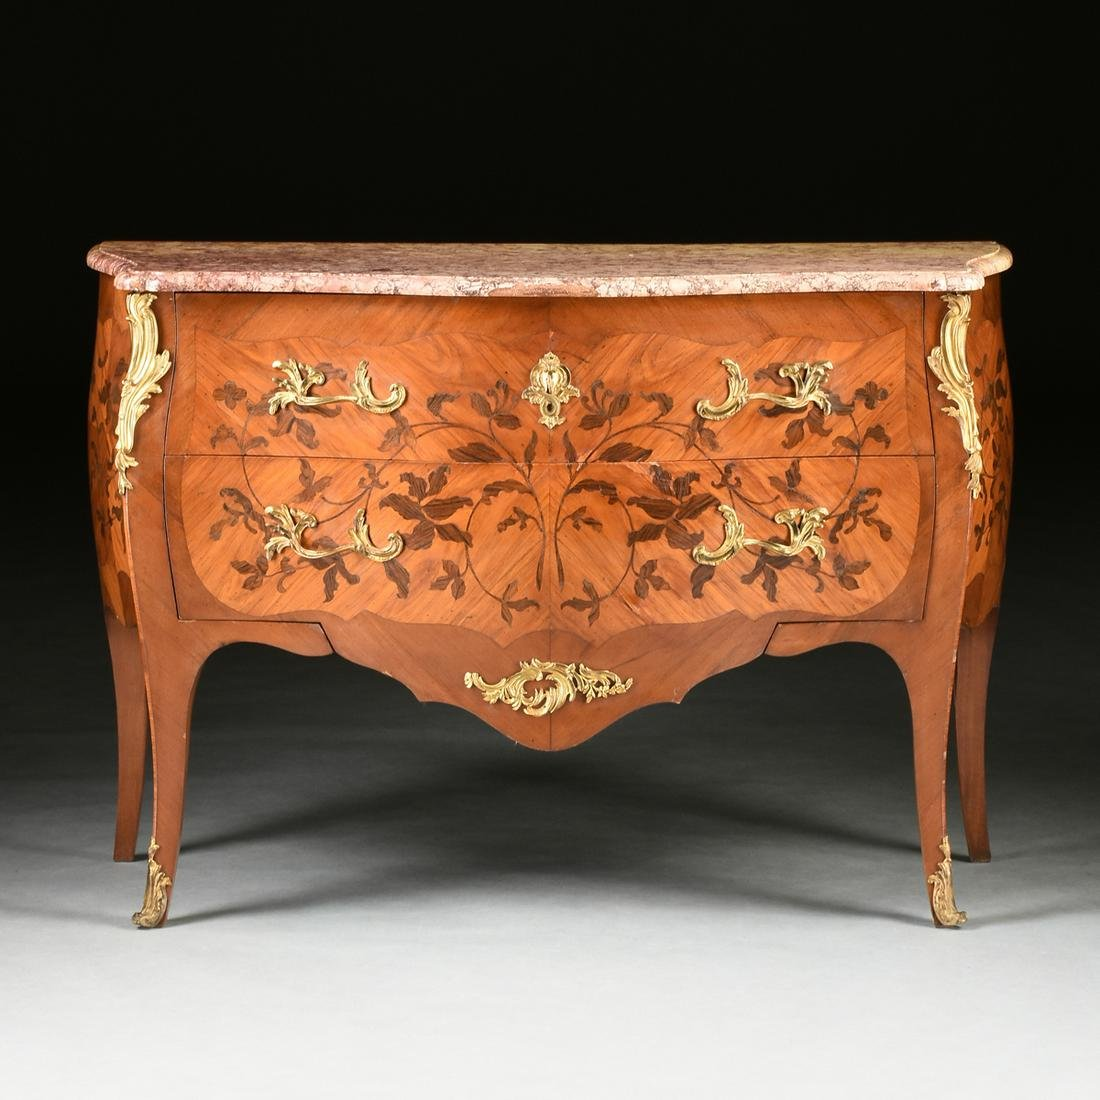 A LOUIS XV STYLE MARBLE TOPPED AND GILT BRONZE MOUNTED